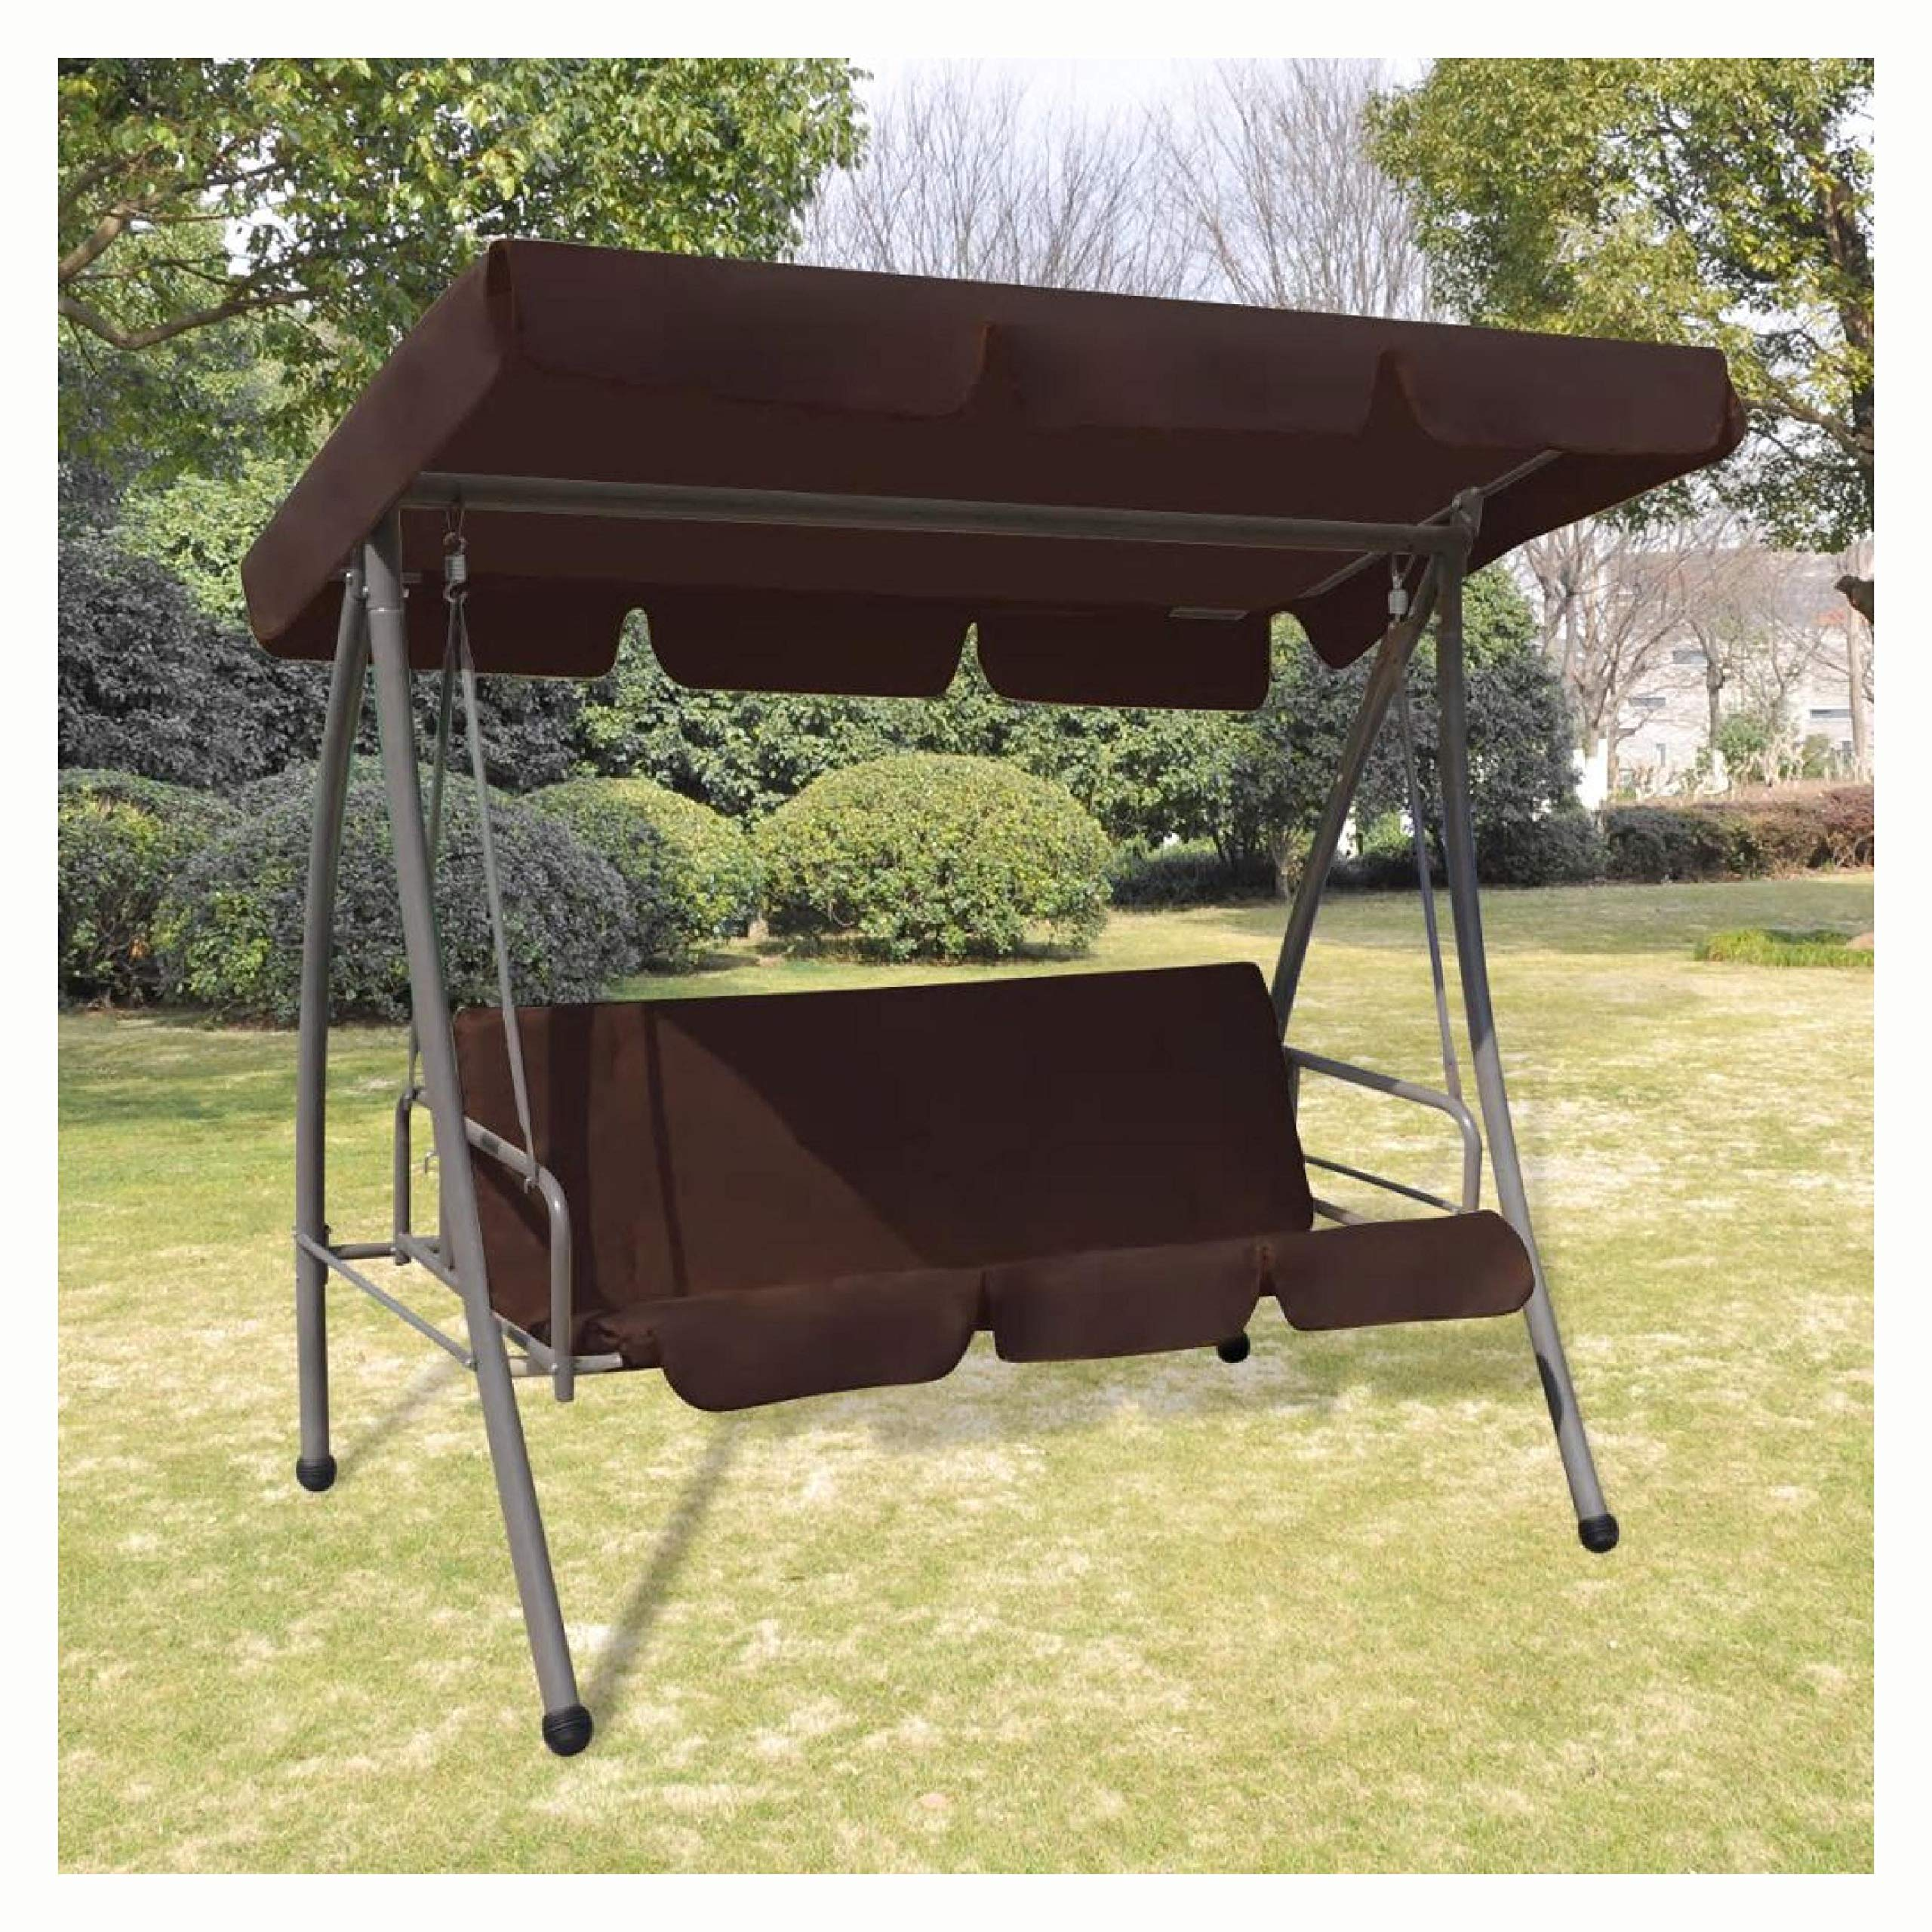 HEATAPPLY Porch Swing, Outdoor Swing Chair with Canopy Coffee by HEATAPPLY